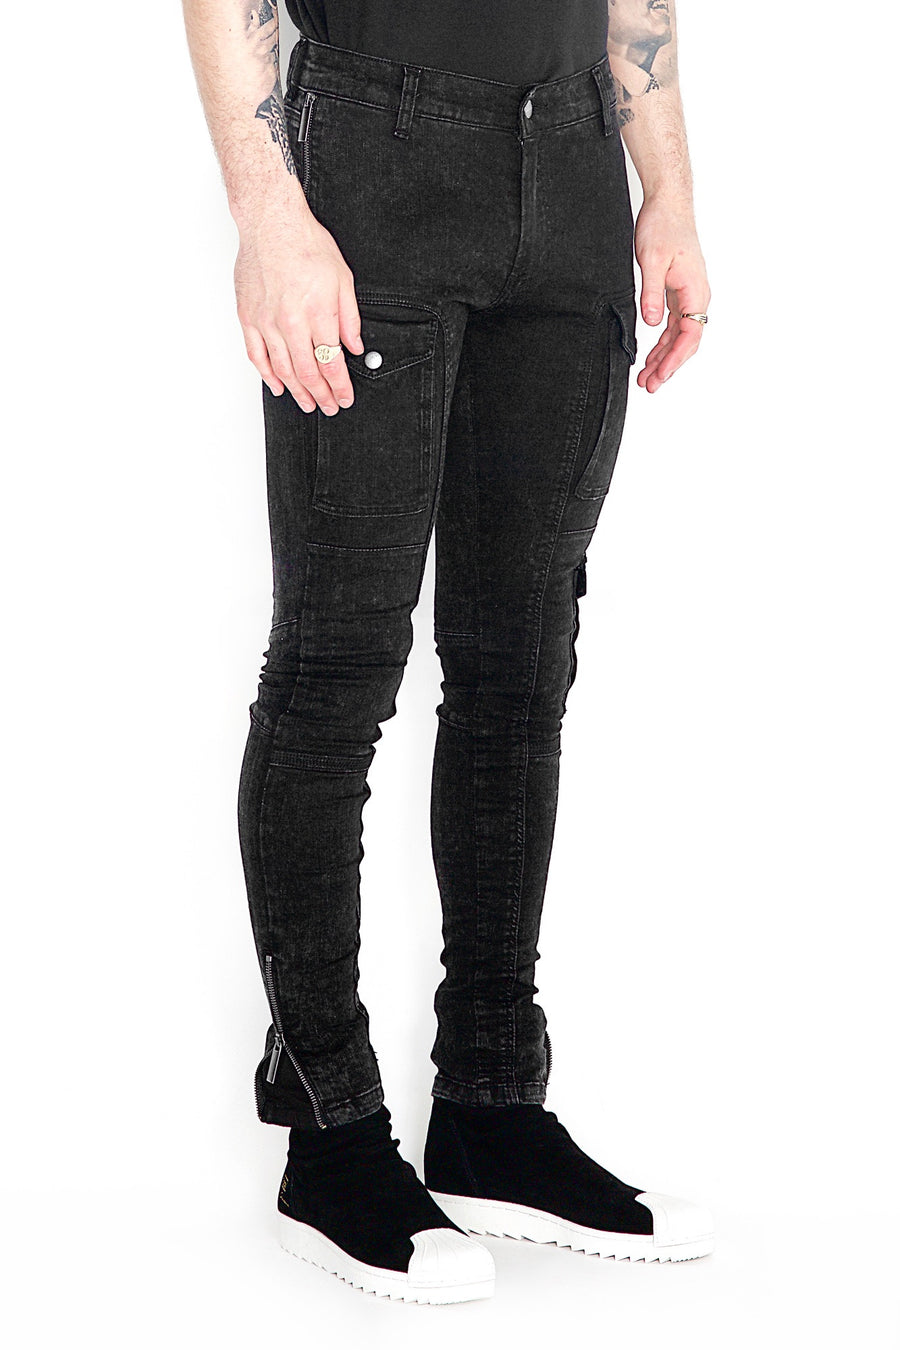 Kago Jeans Black Ice